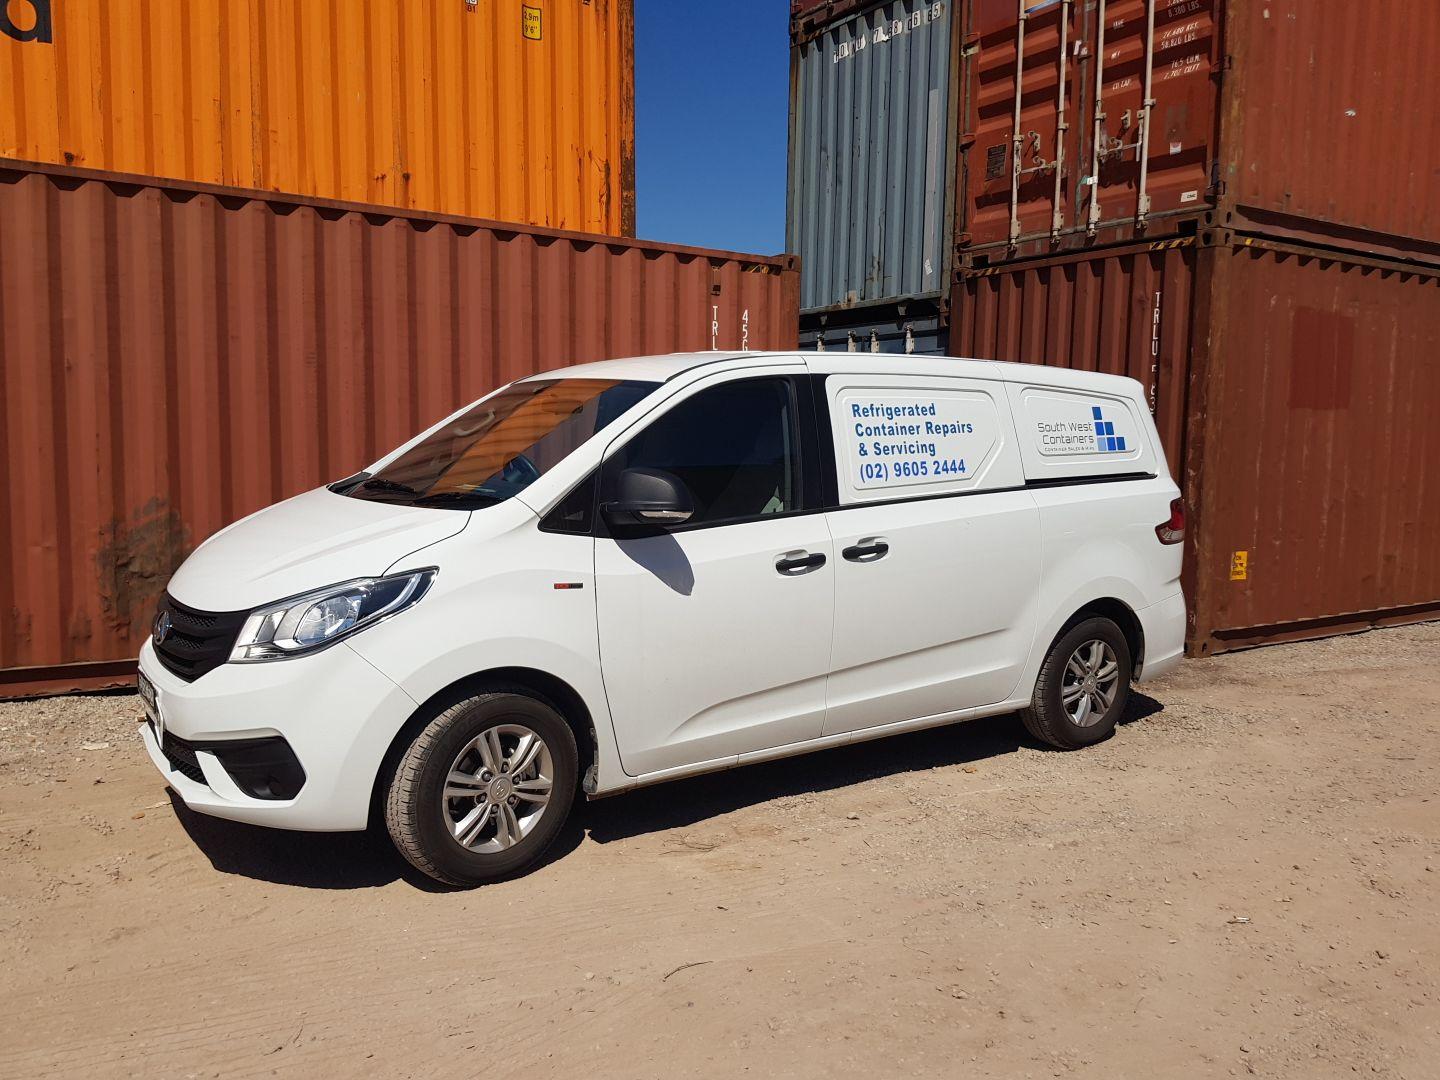 Fully Qualified Mobile Refrigerated Service Technicians